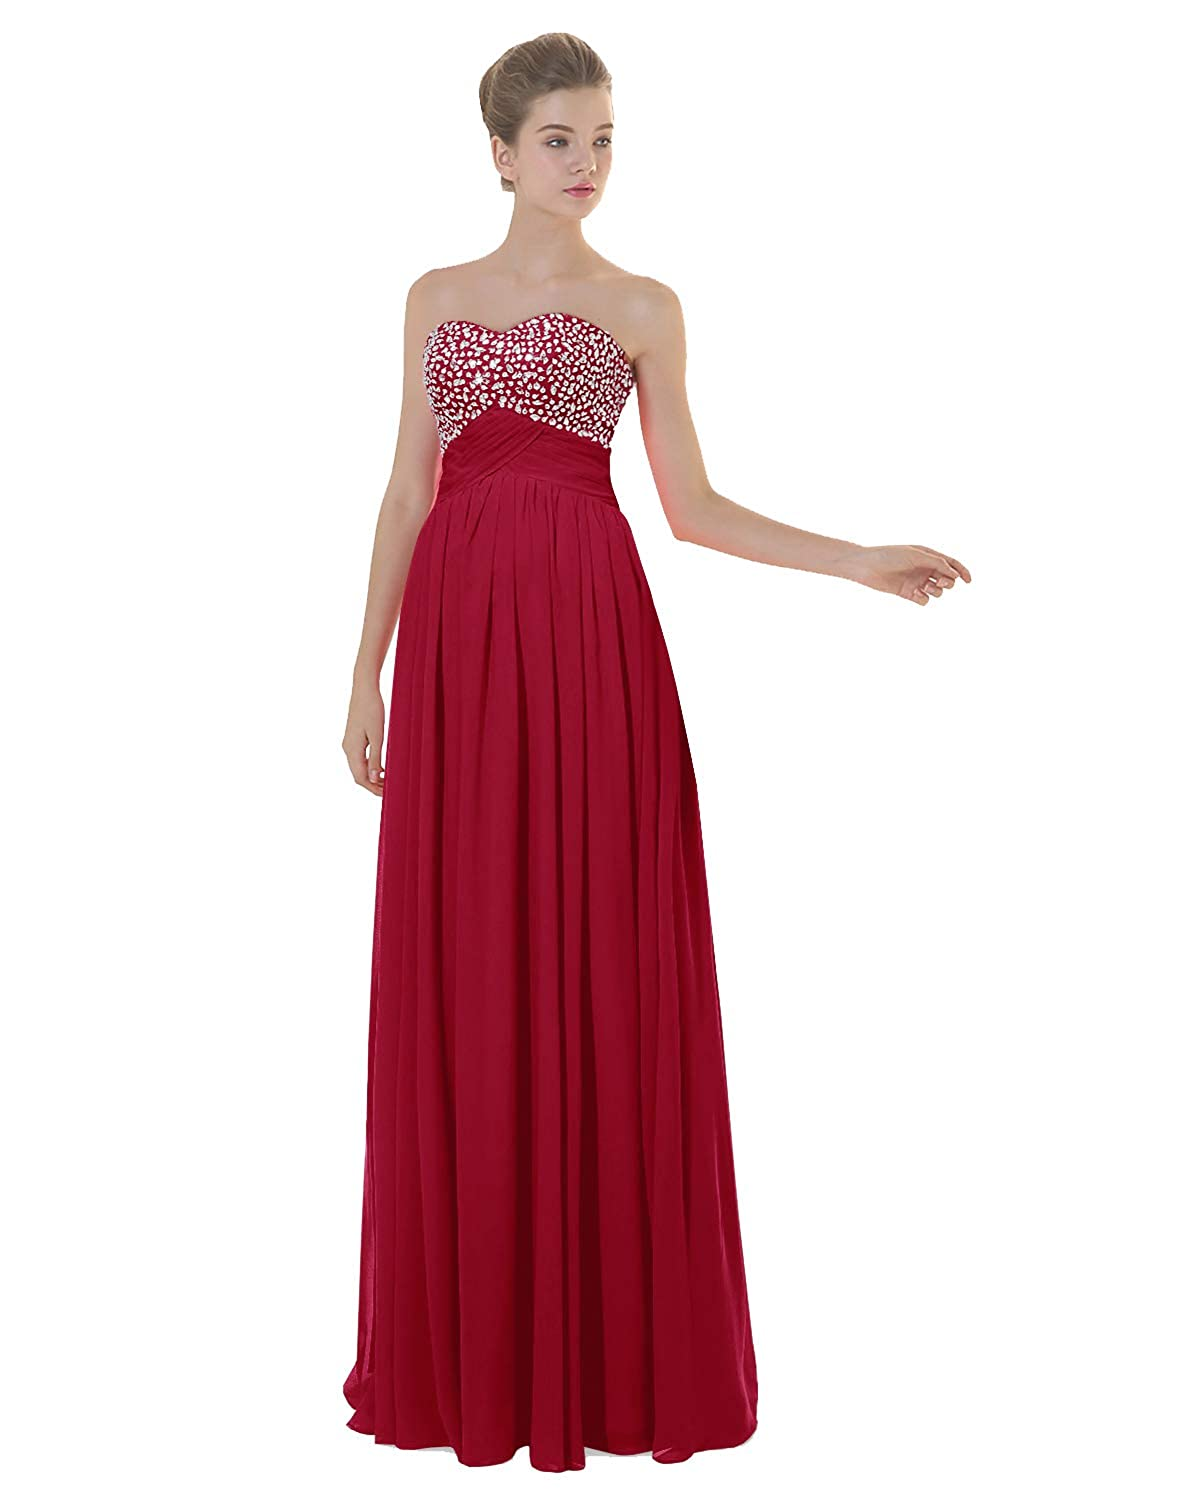 Dark Red ANGELWARDROBE Empire Beaded Sweetheart Neck Prom Gowns Long Evening Dresses Party Skirts